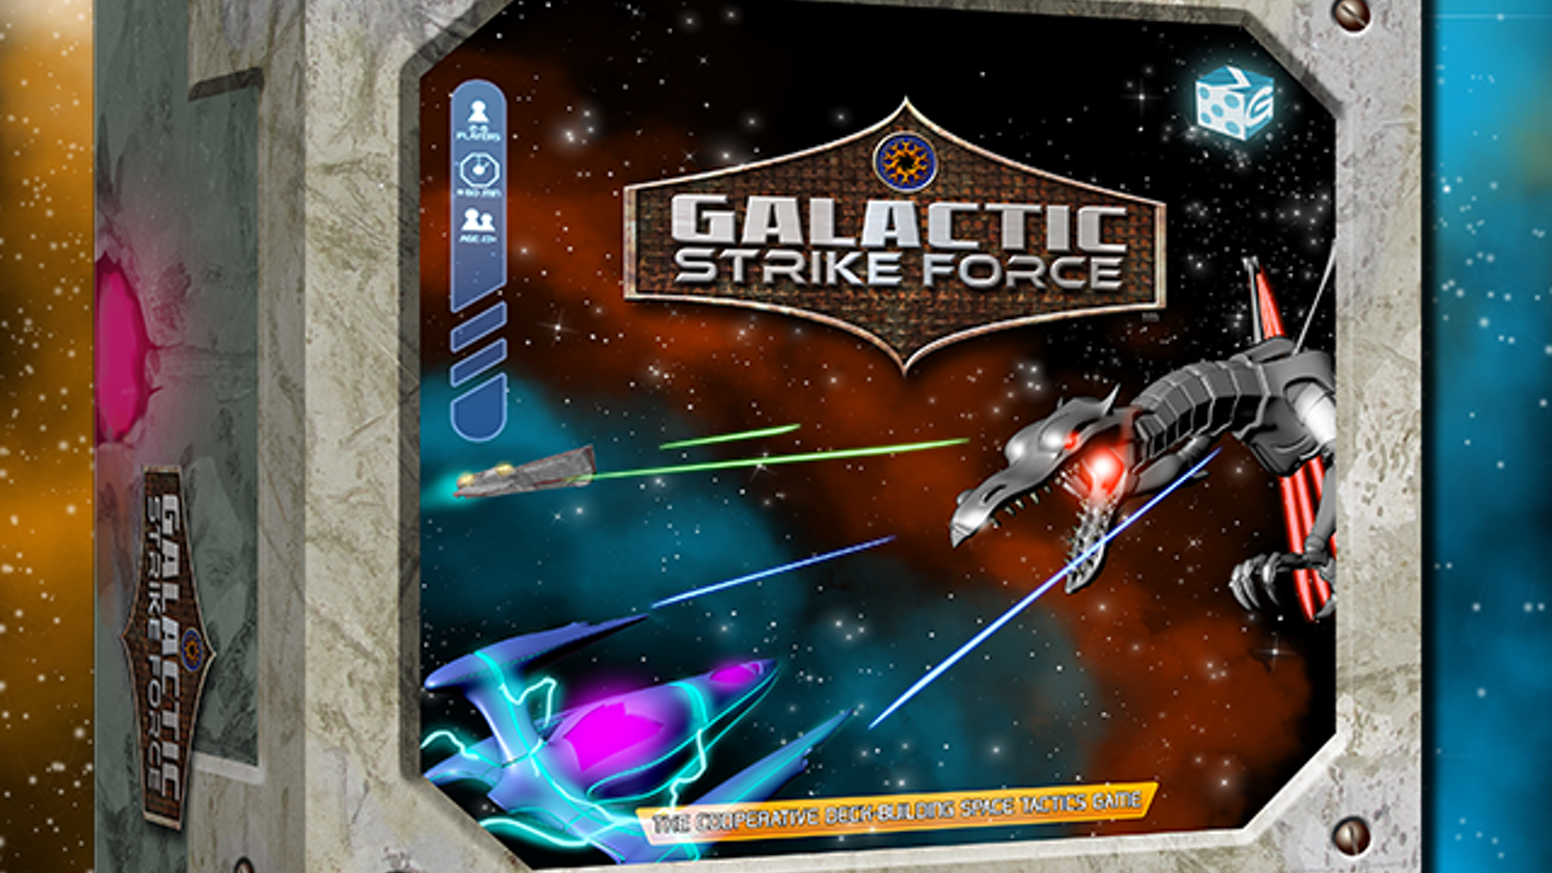 Galactic Strike Force is currently available for order! If you have any questions please email contact@greaterthangames.com. Don't forget to follow us on social Instagram and Facebook @GreaterThanGames or Twitter and Snapchat @GTGamesLLC.